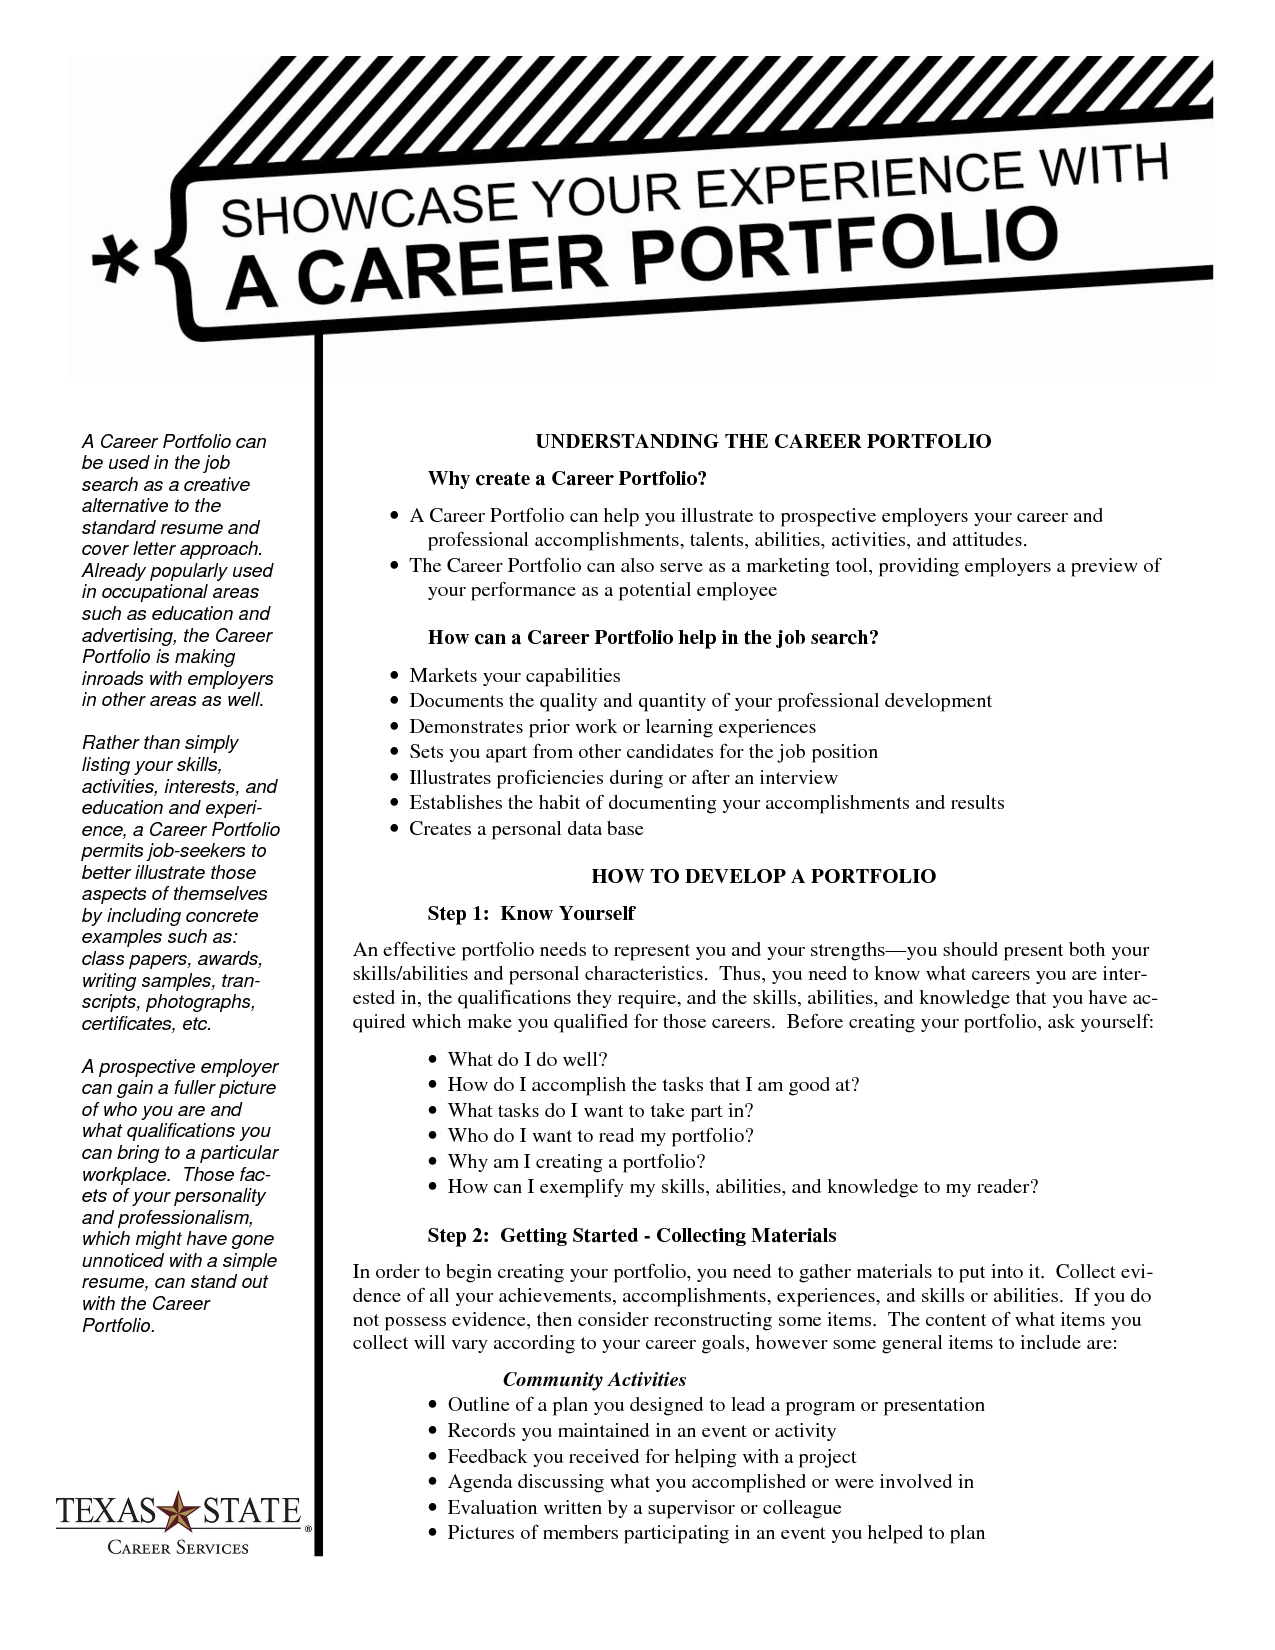 Portfolio Resume Examples Sample Of Portfolio Outline Career Portfolio Handout